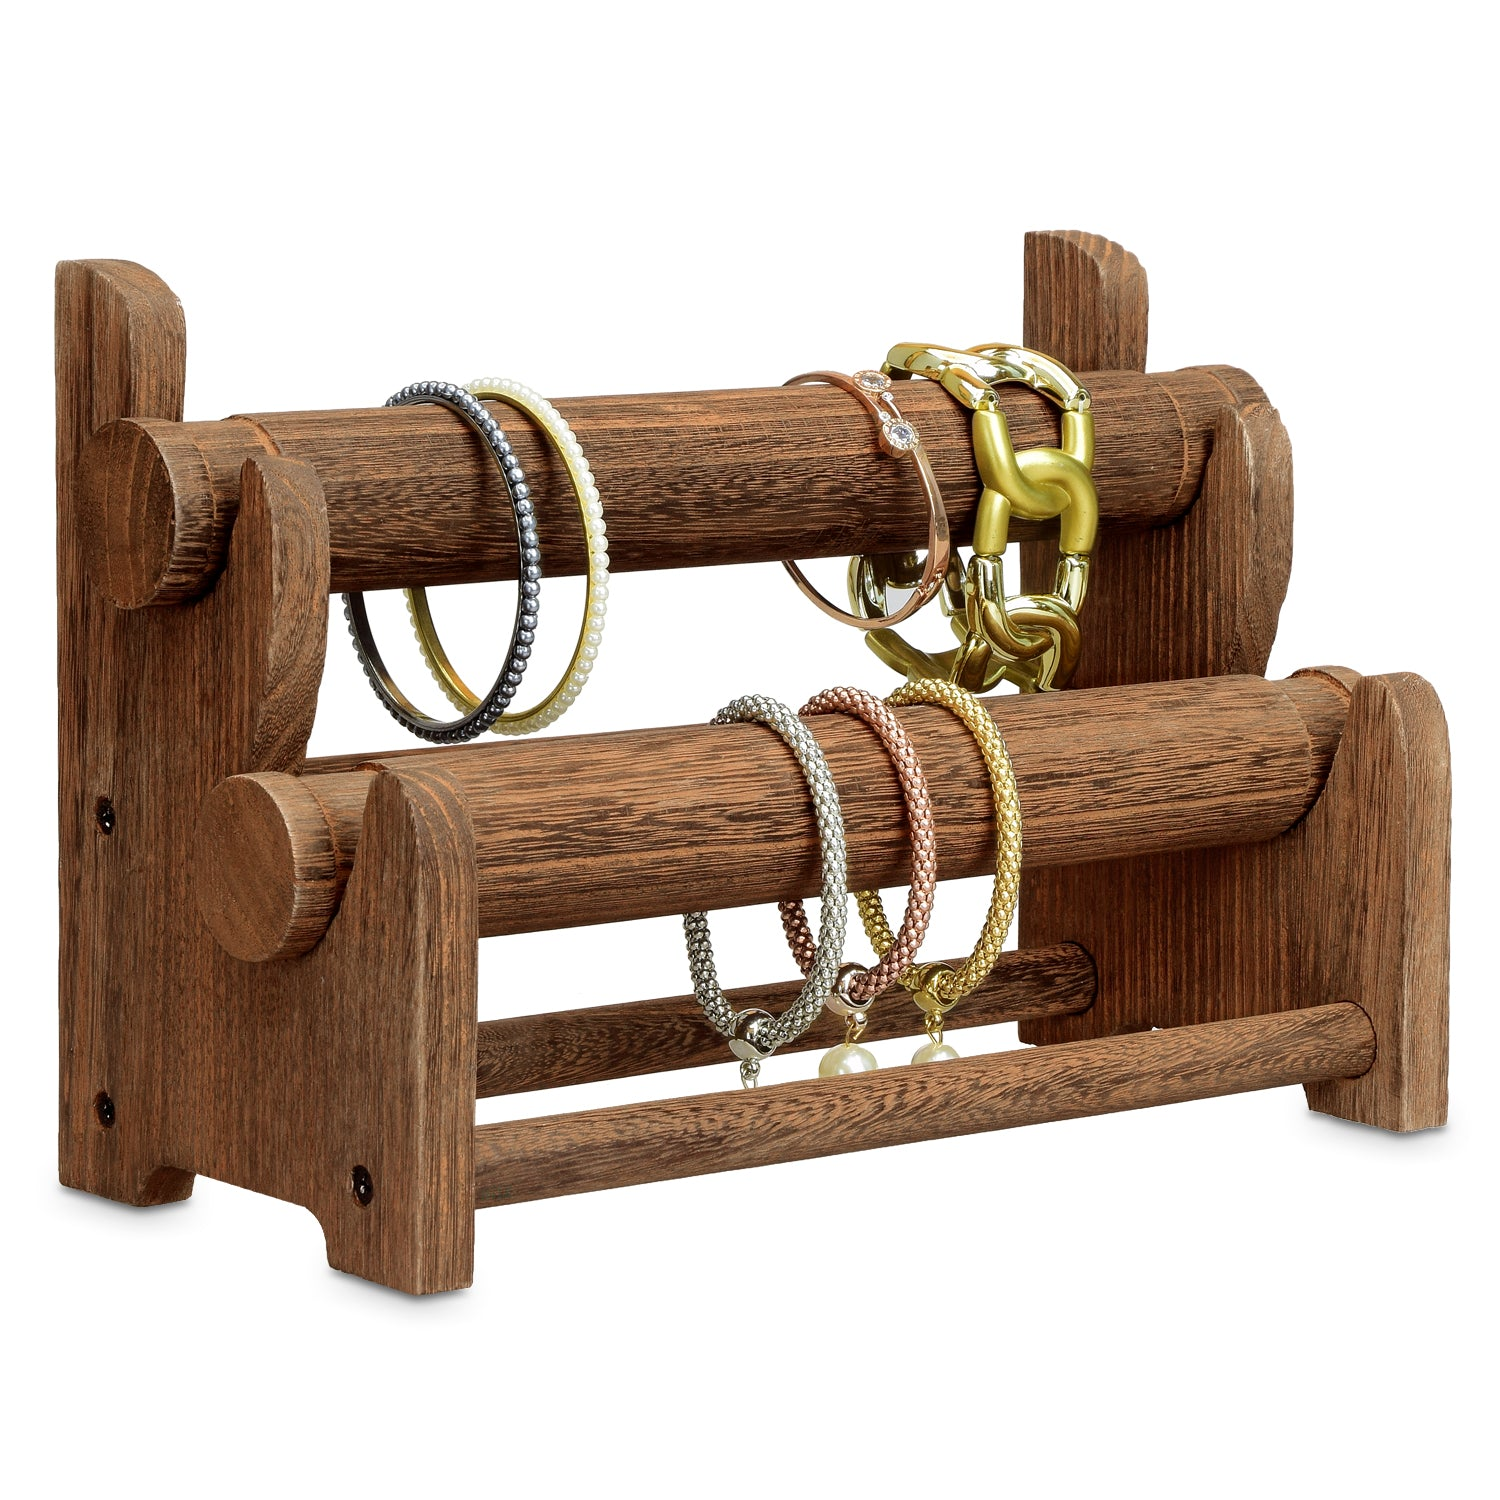 Ikee Design Wooden 2 Tier Bar Bracelet Bangle Jewelry Holder Stand Di